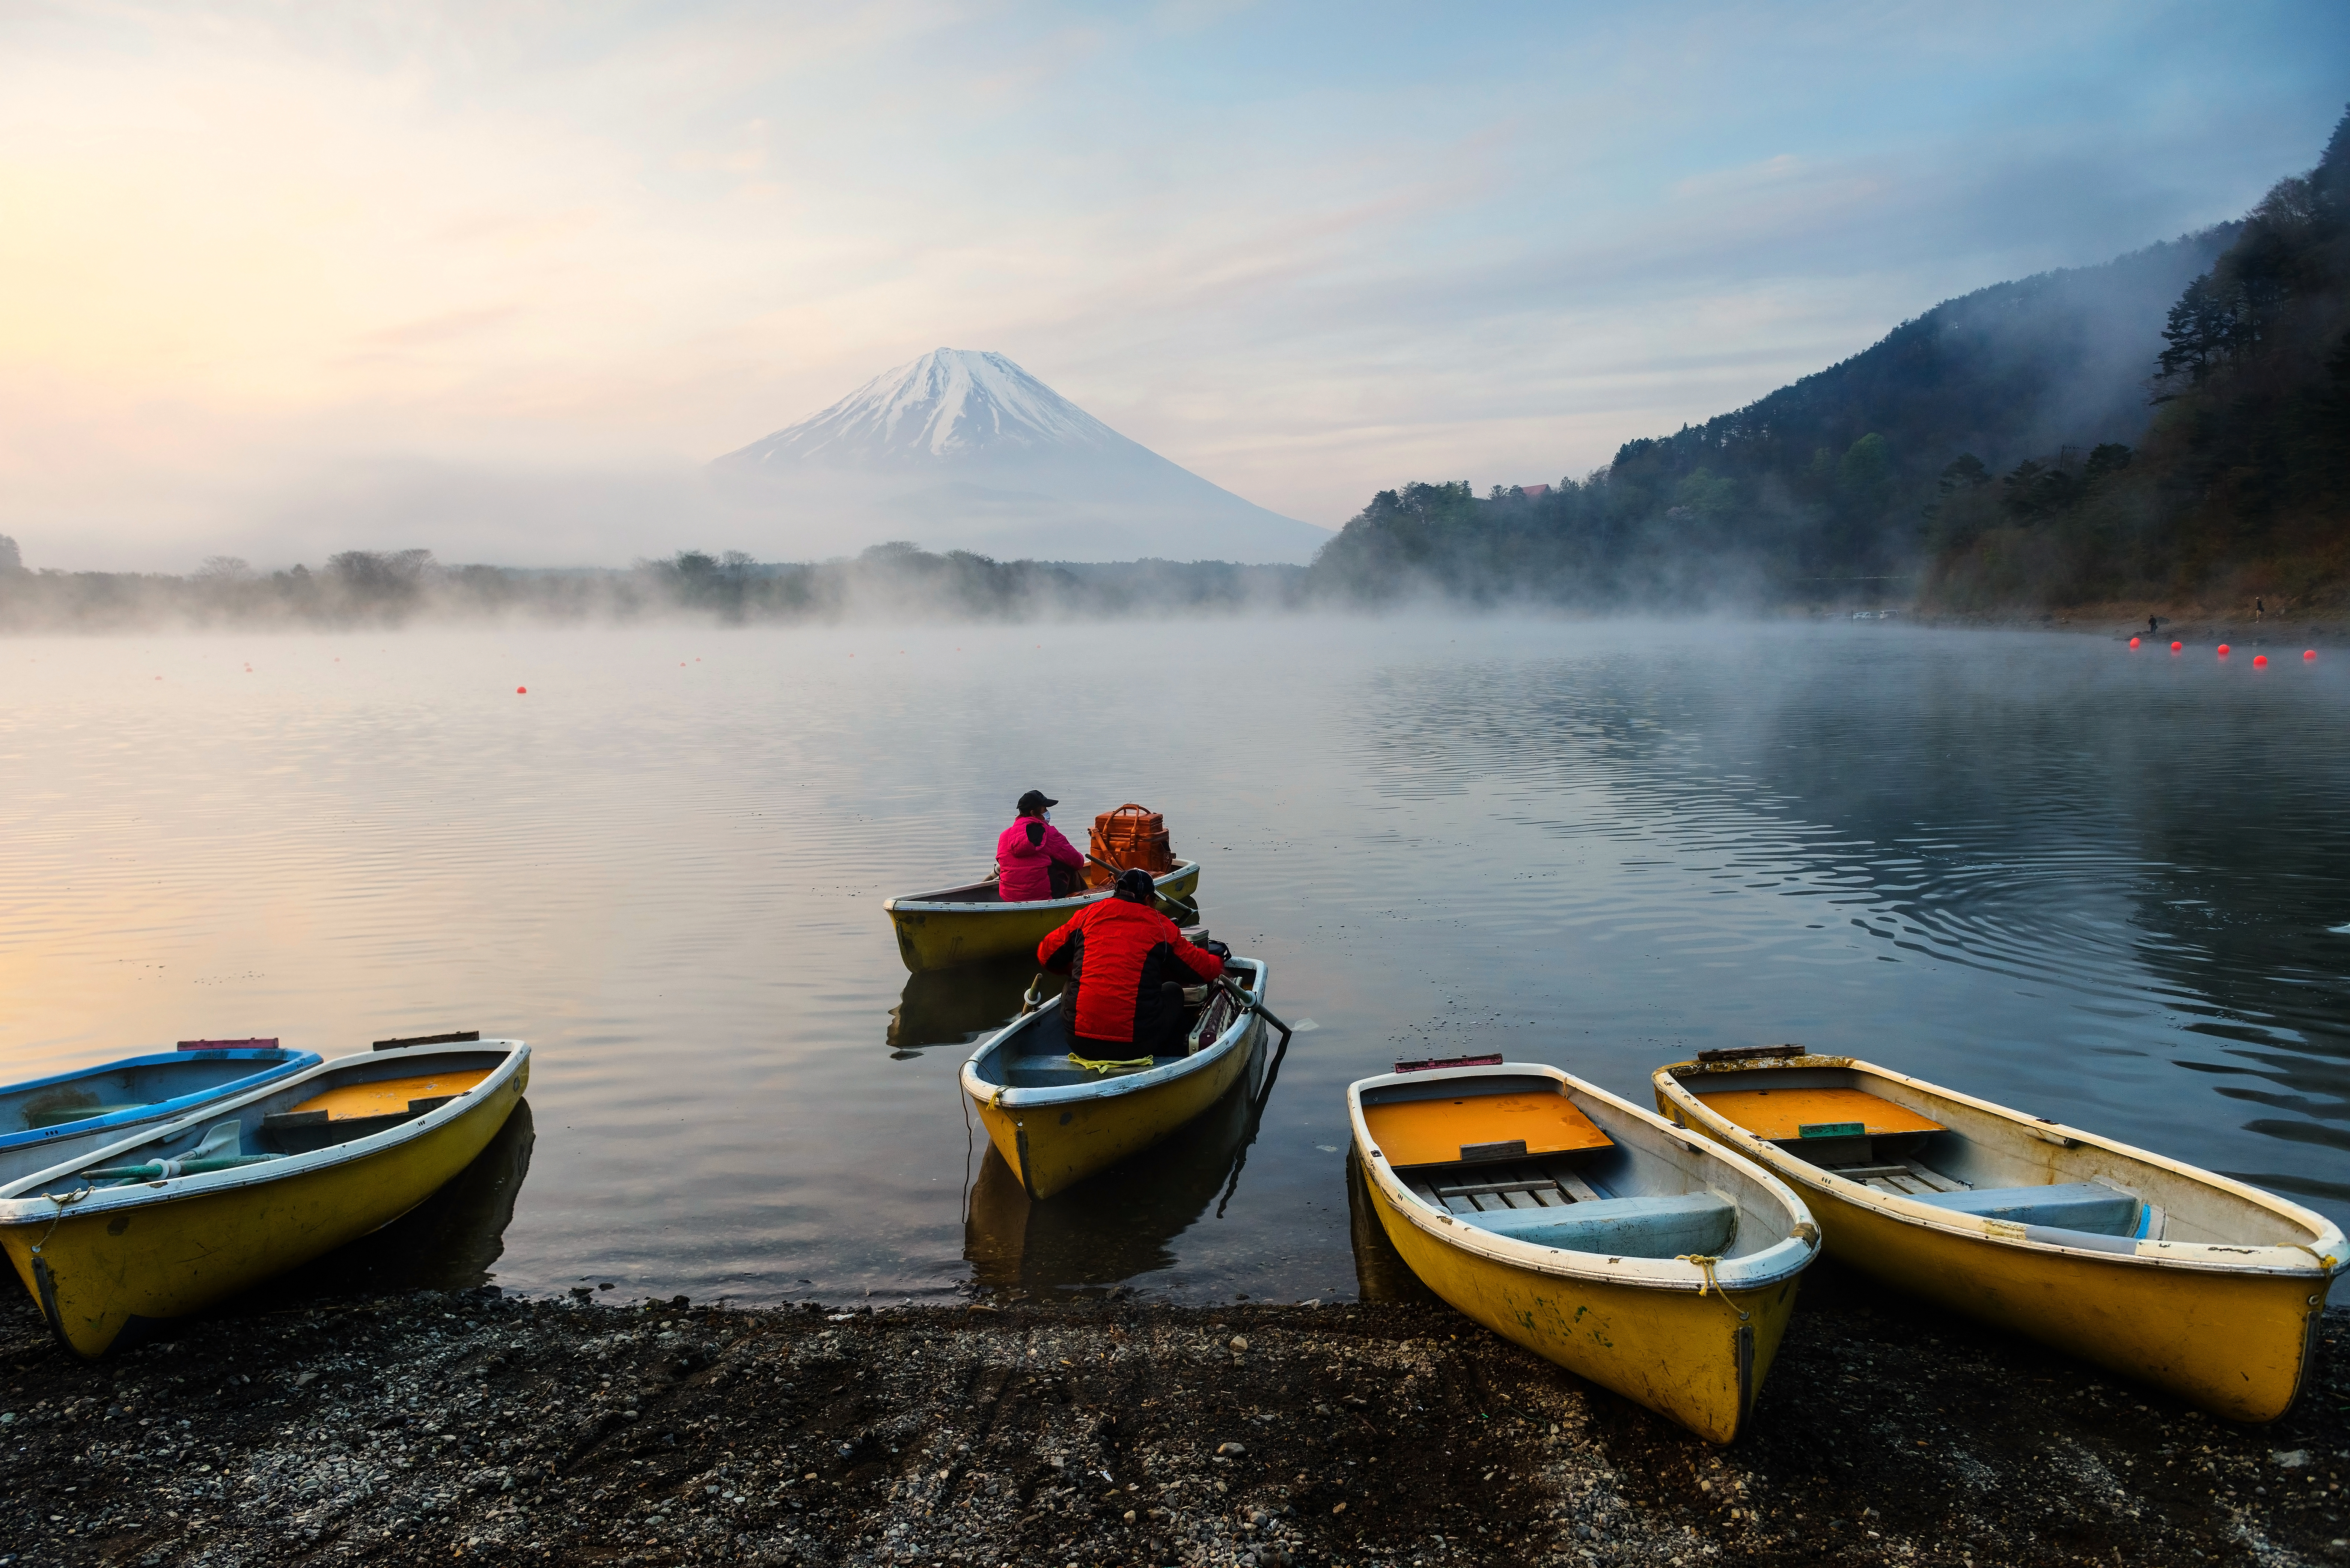 Saling boat for fishing at Lake Shoji in the morning with mist, Japan